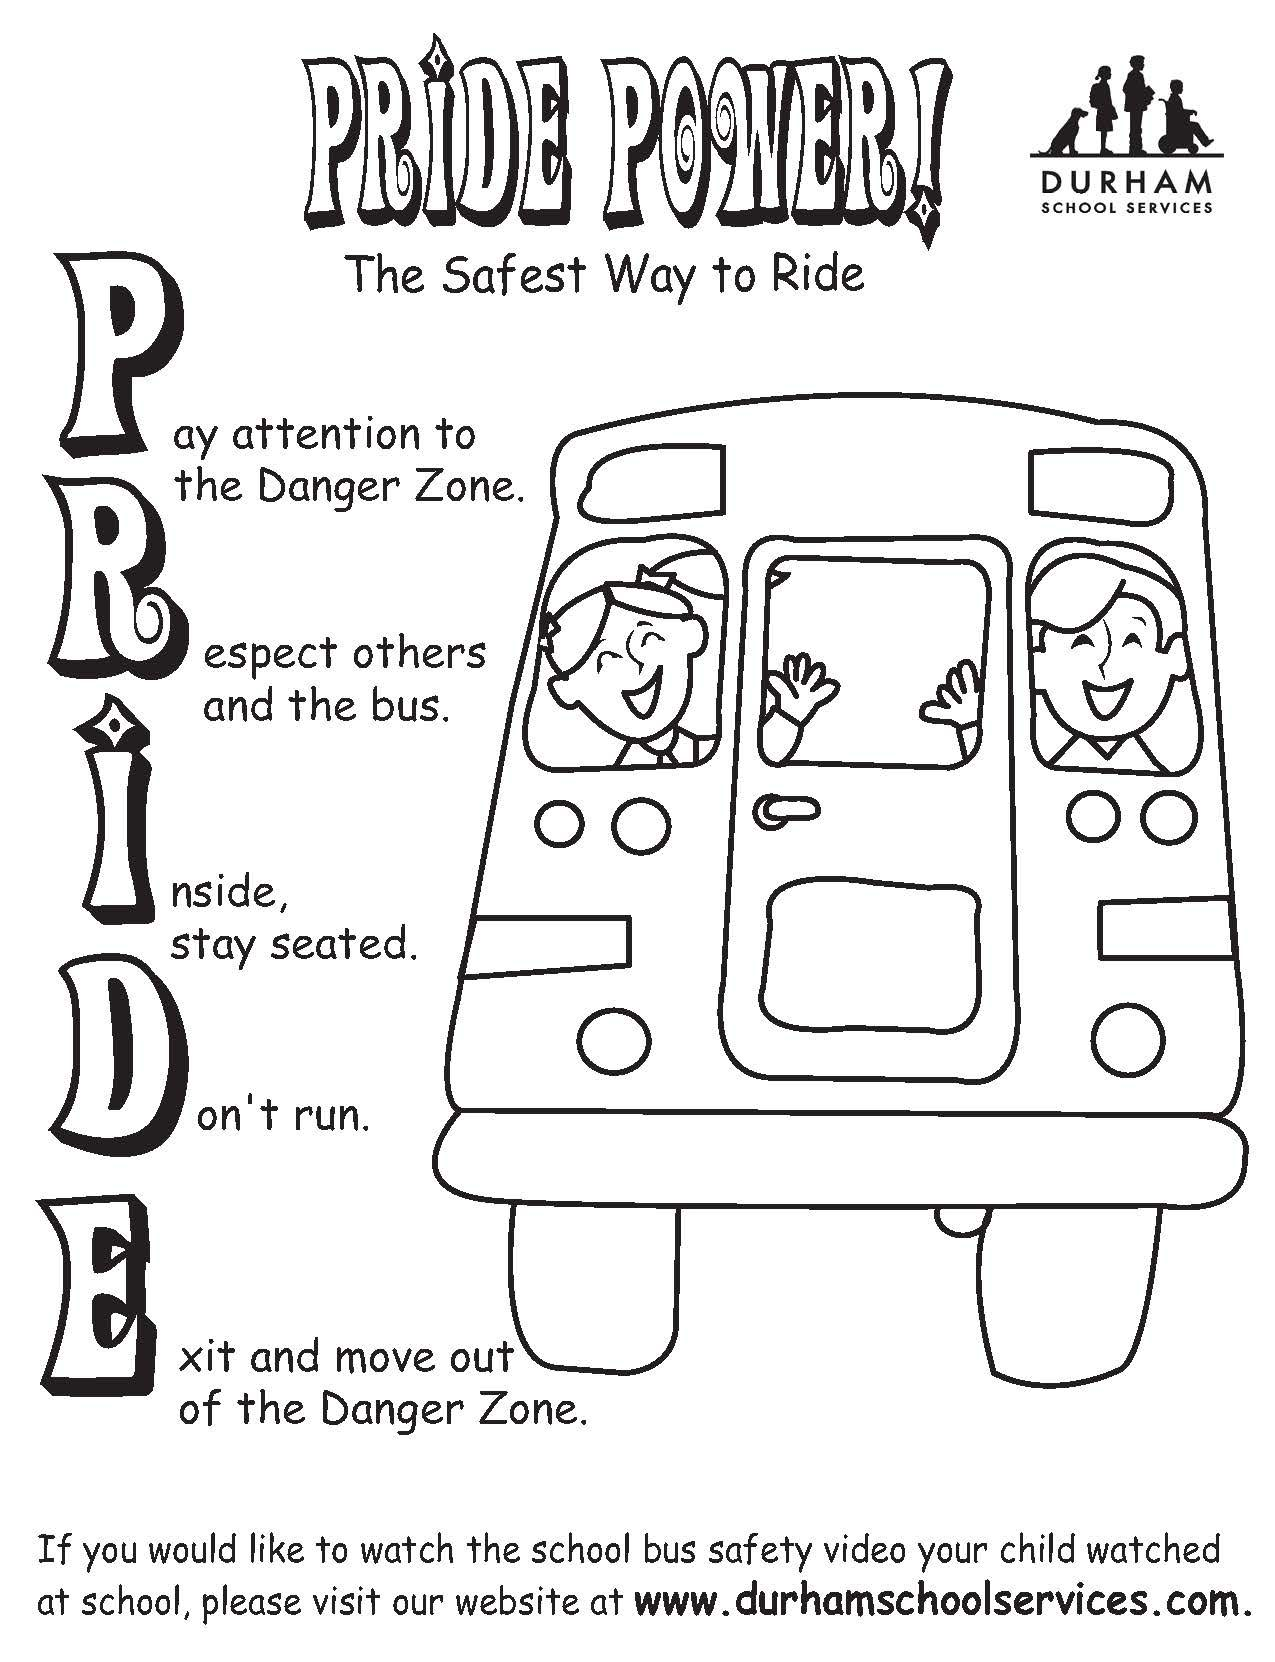 Worksheets Kidzone Worksheets pride power coloring sheet school bus safety kid zone httpwww httpwww